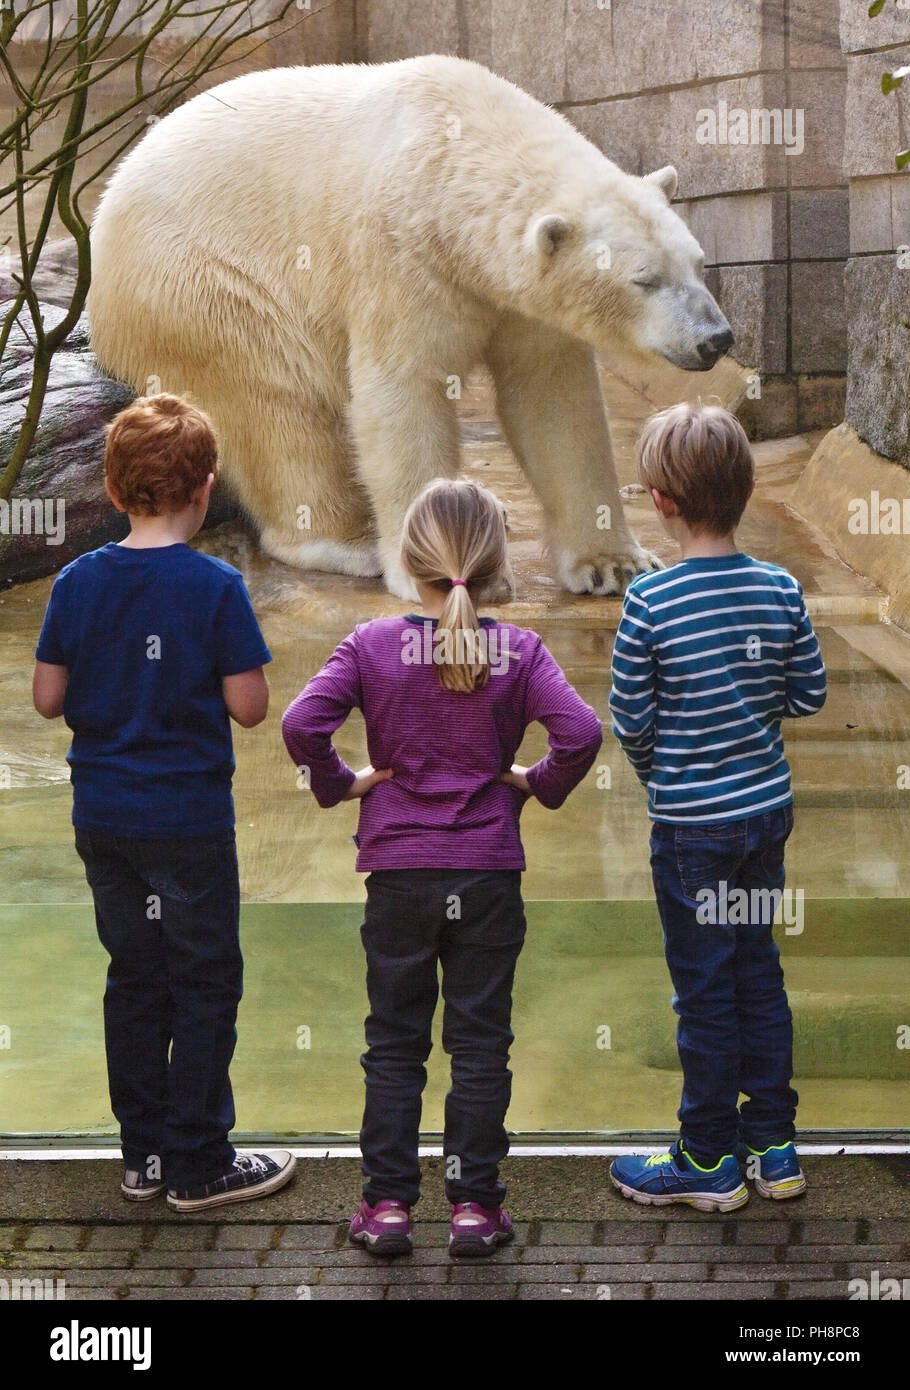 three childreen in front of a polar bear Wuppertal - Stock Image